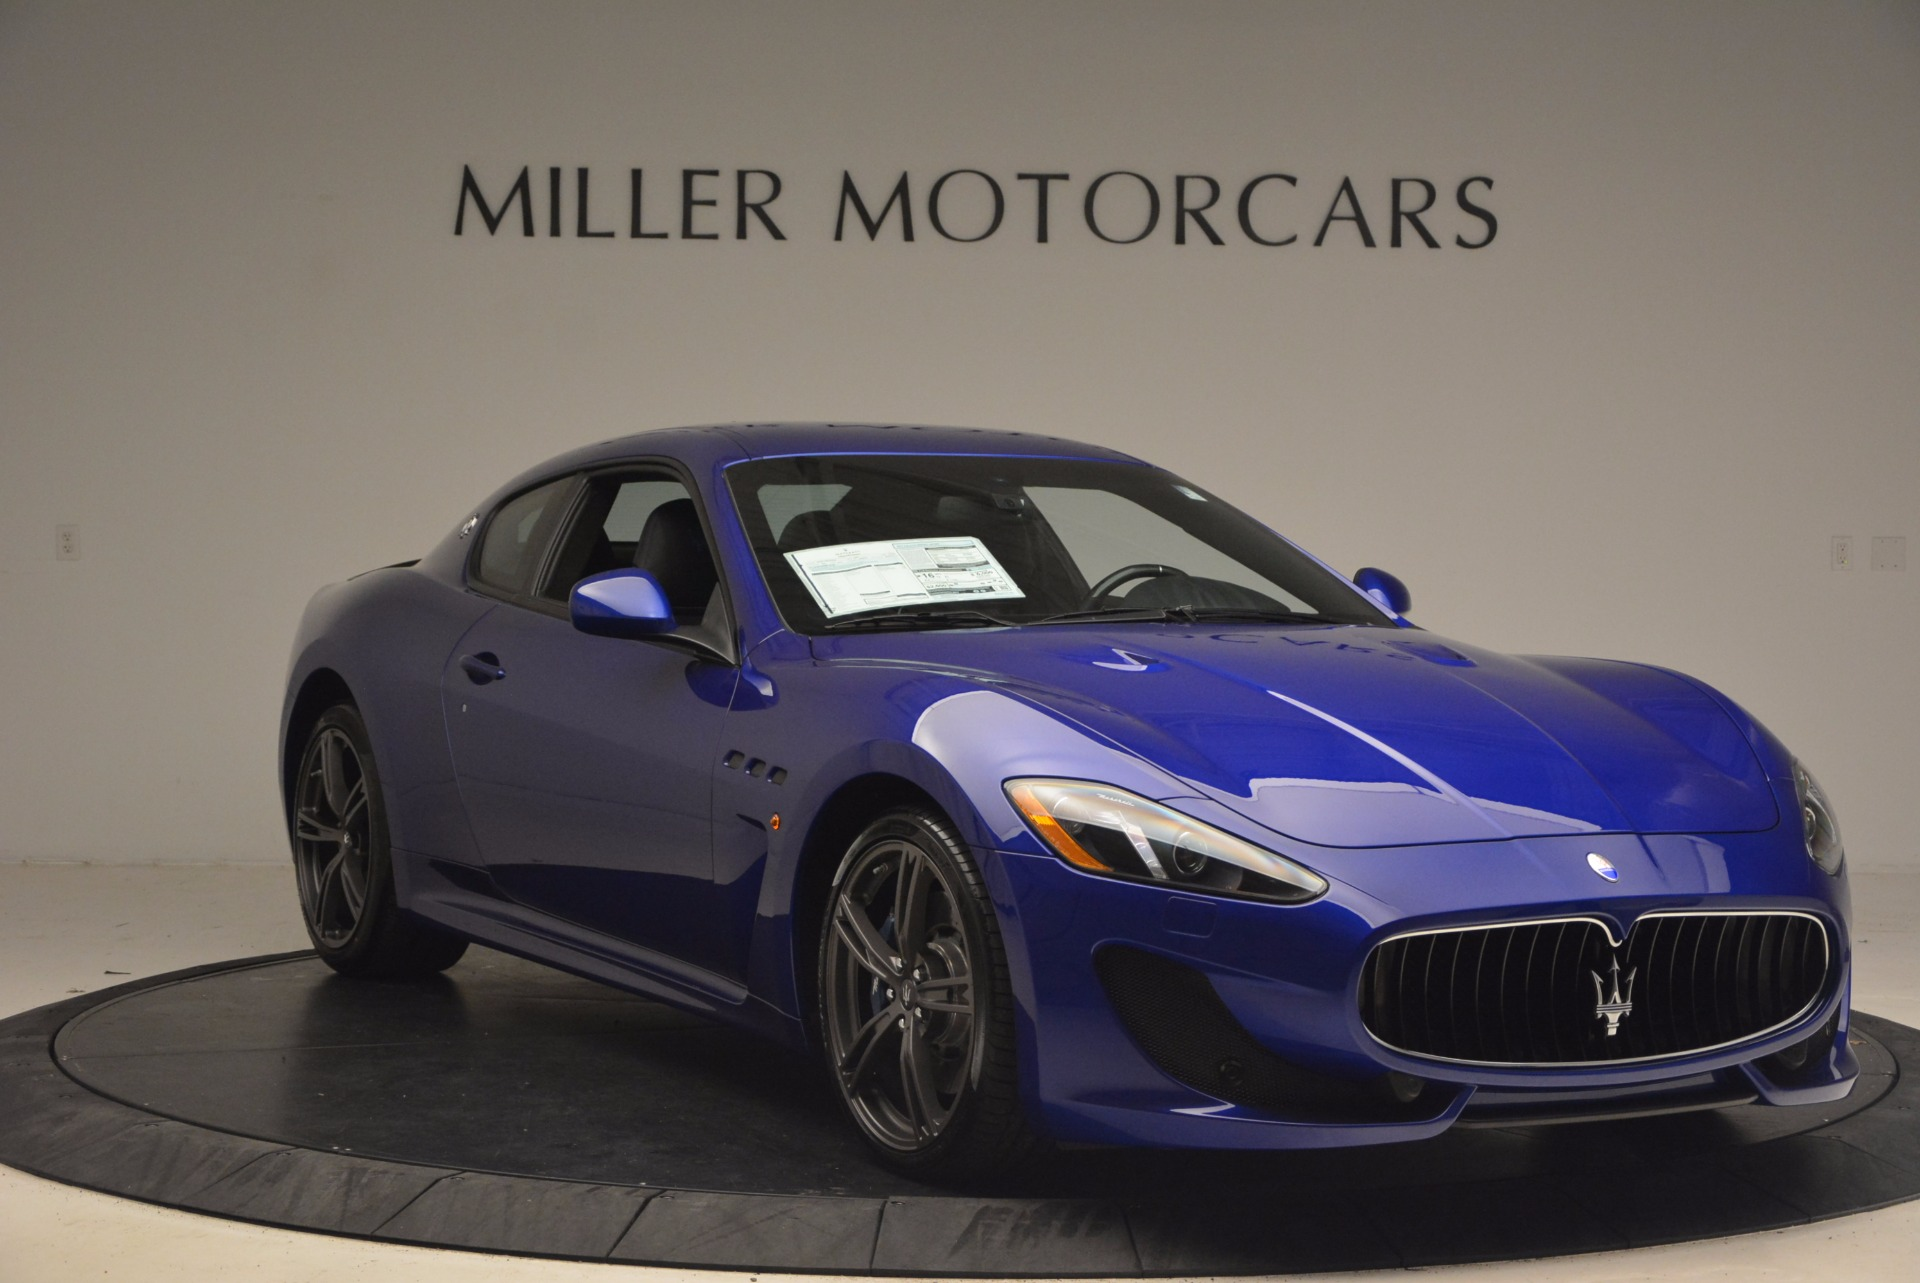 New 2017 Maserati GranTurismo Sport Coupe Special Edition For Sale In Greenwich, CT 1300_p11